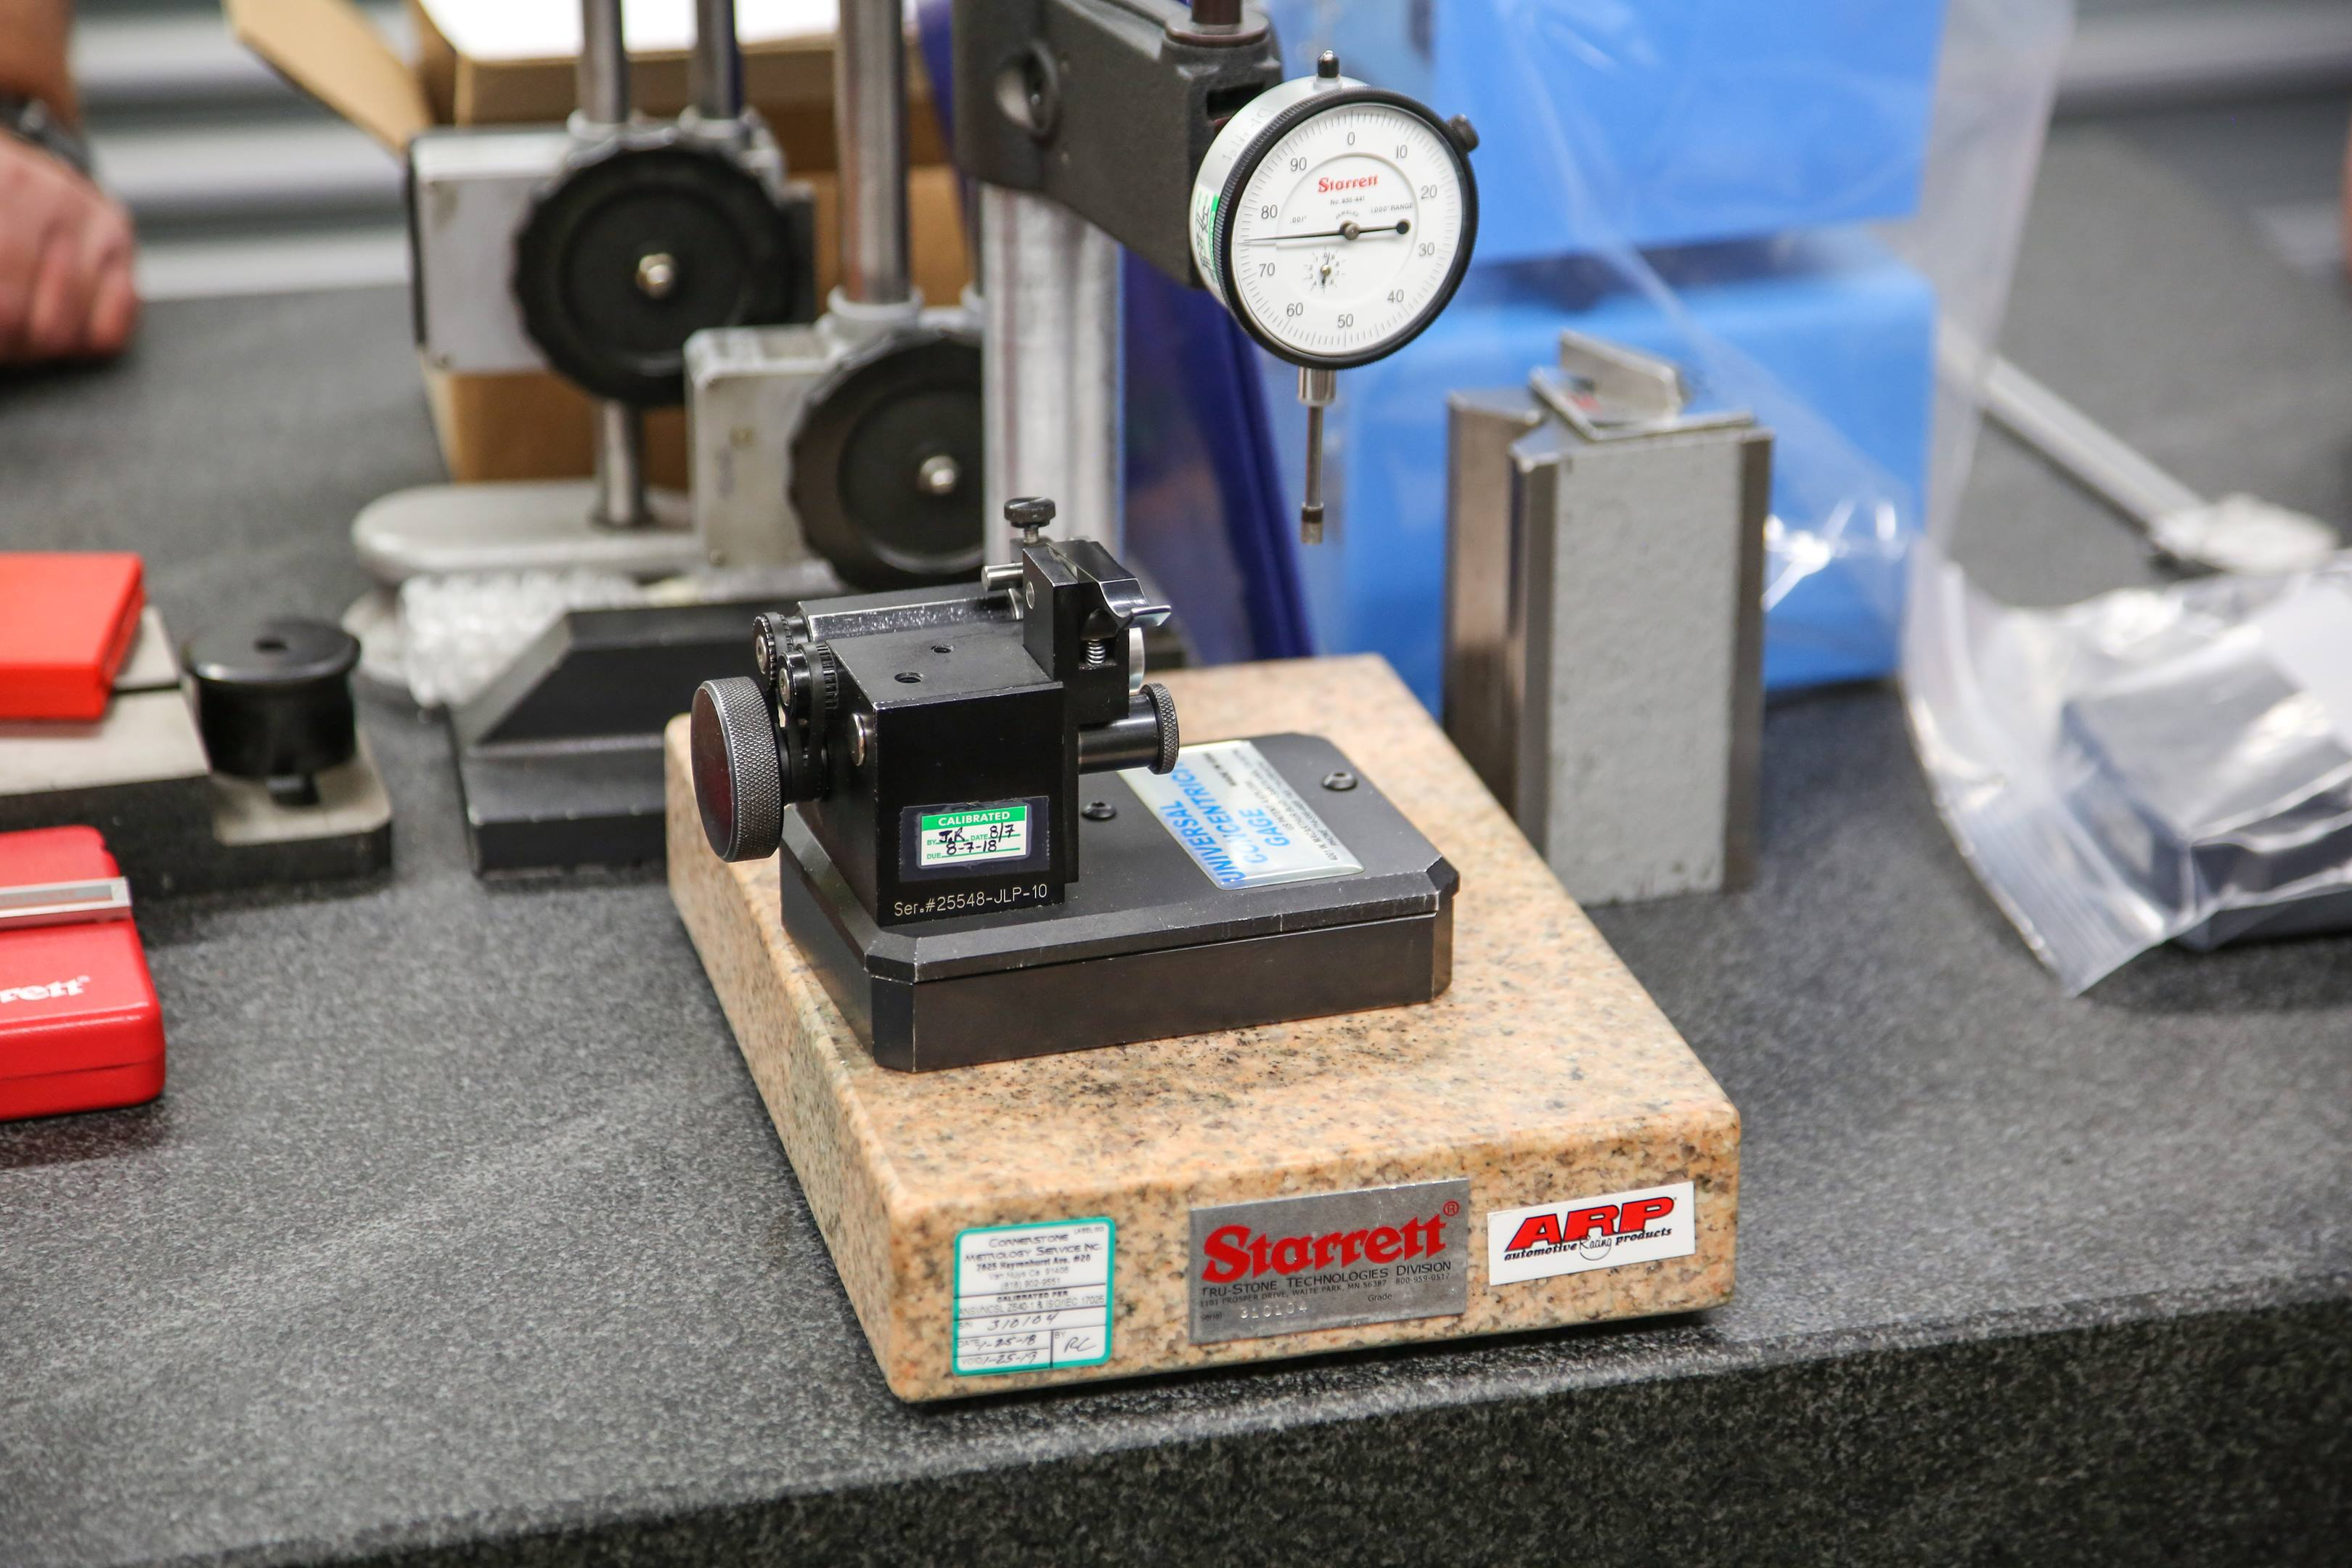 The inspection room is filled with all sorts of measurement tools, from state-of-the-art laser scanners to precision dial indicators like this one.